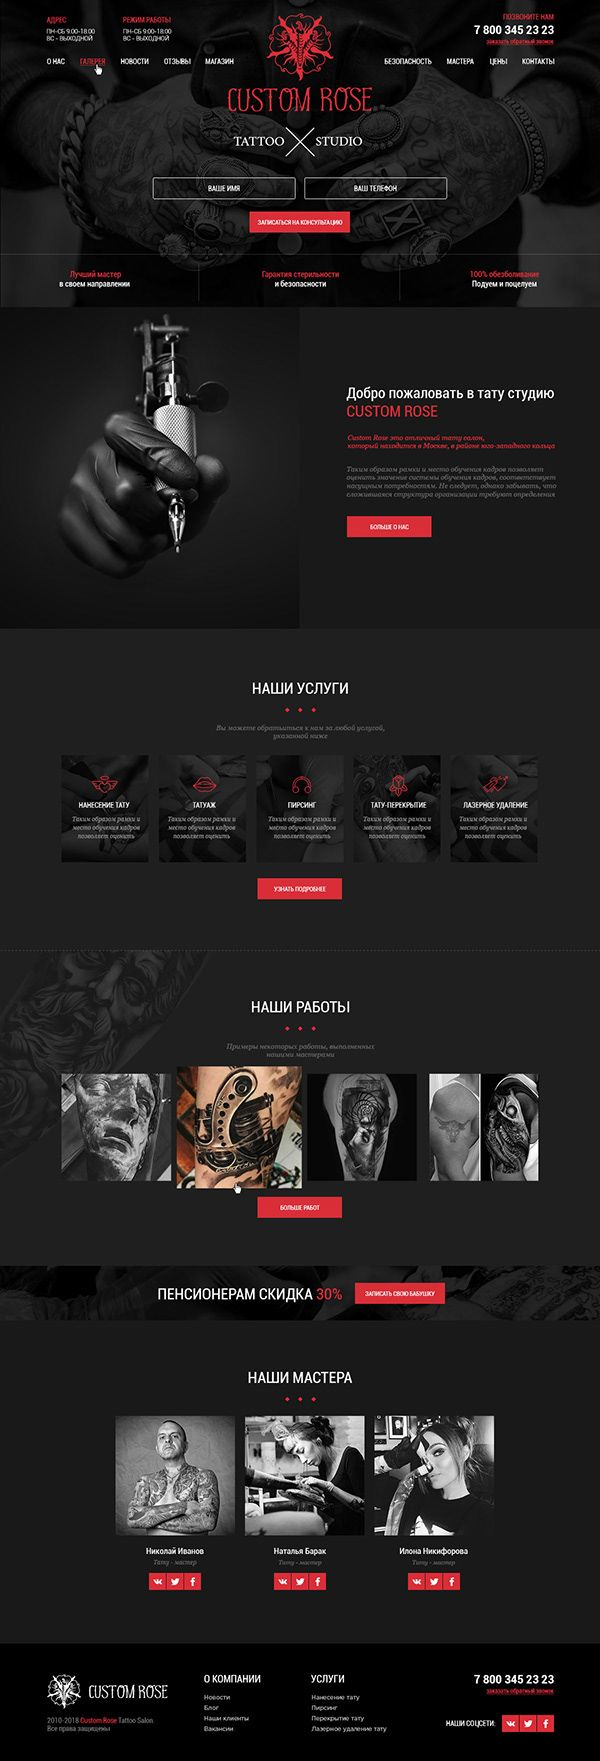 Tattoo Saloon Website On Behance V 2020 G S Izobrazheniyami Dizajn Veb Sajtov Dizajn Sajta Dizajn Interfejsa